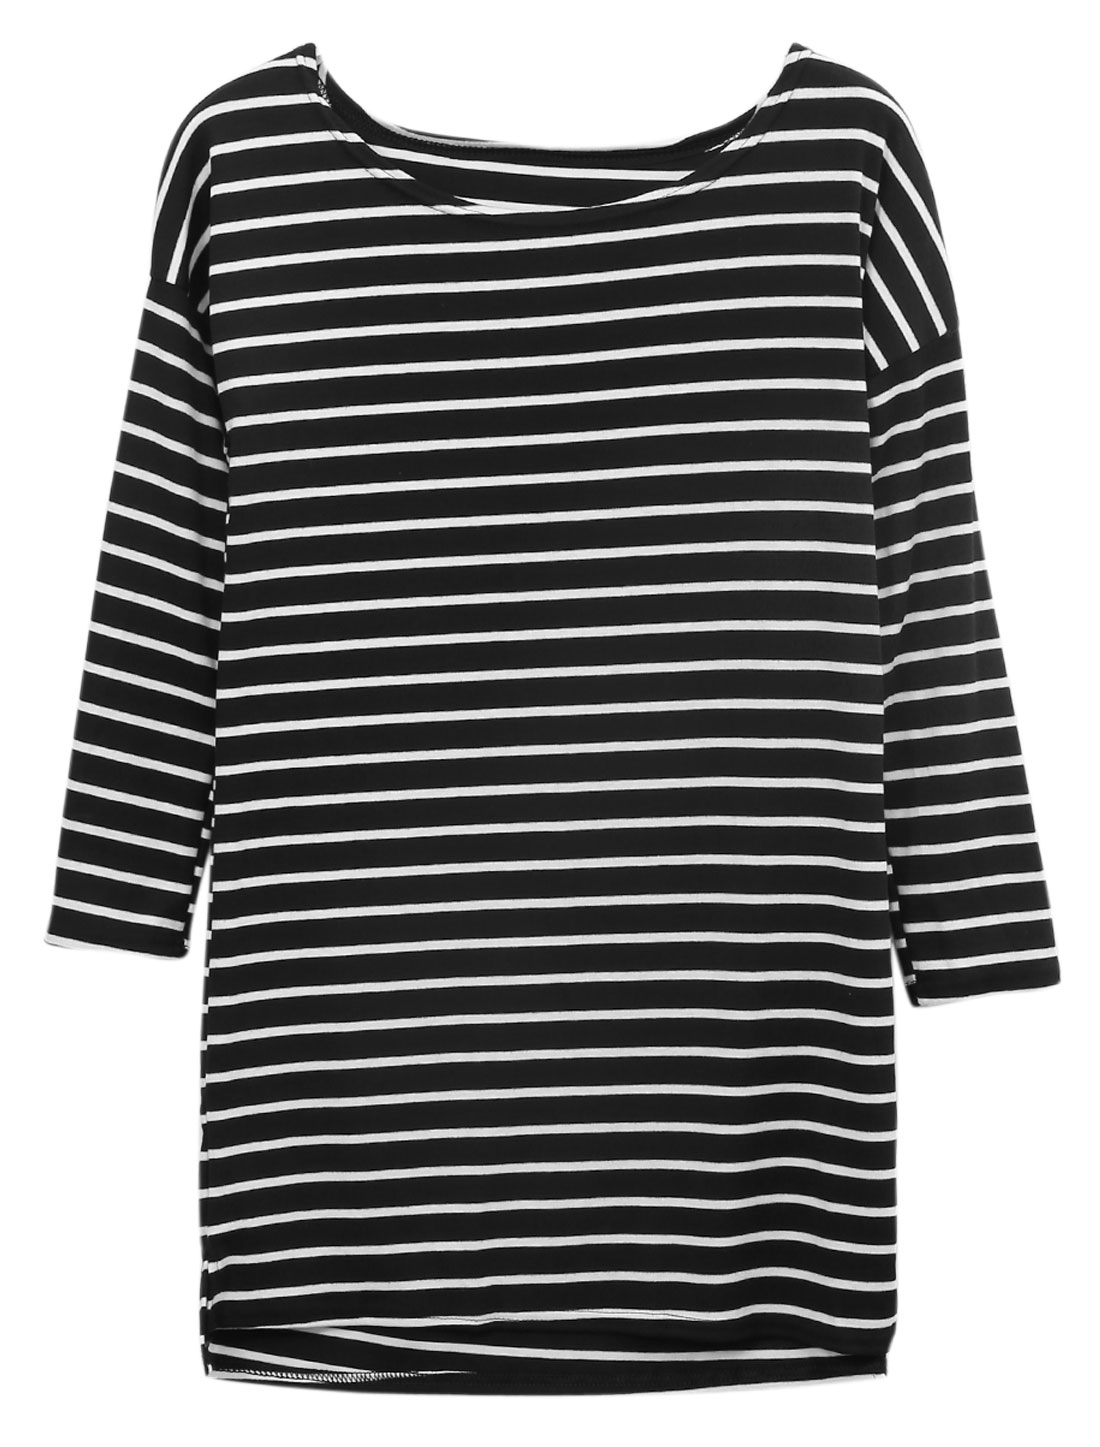 Women Stripes Boat Neck Long Batwing Sleeves Tunic Top Black S